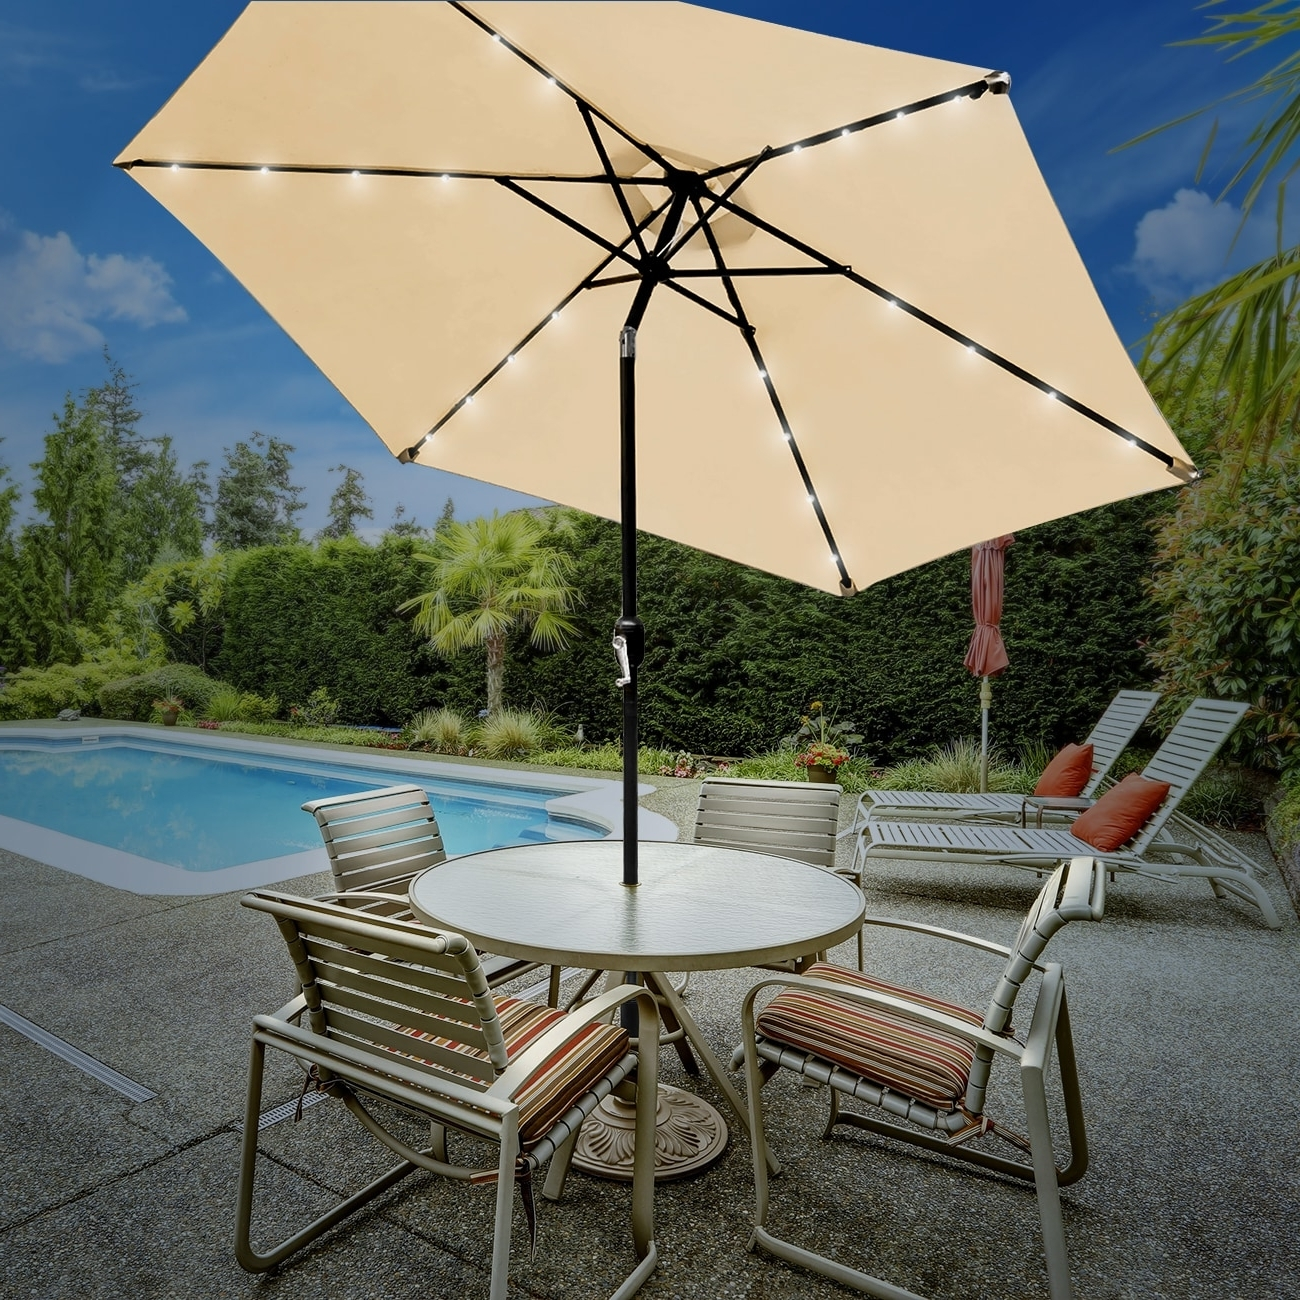 Shop Sorbus® Solar Led Outdoor Umbrella, 10 Ft Patio Umbrella With In Well Liked Gold Coast Patio Umbrellas (View 16 of 20)